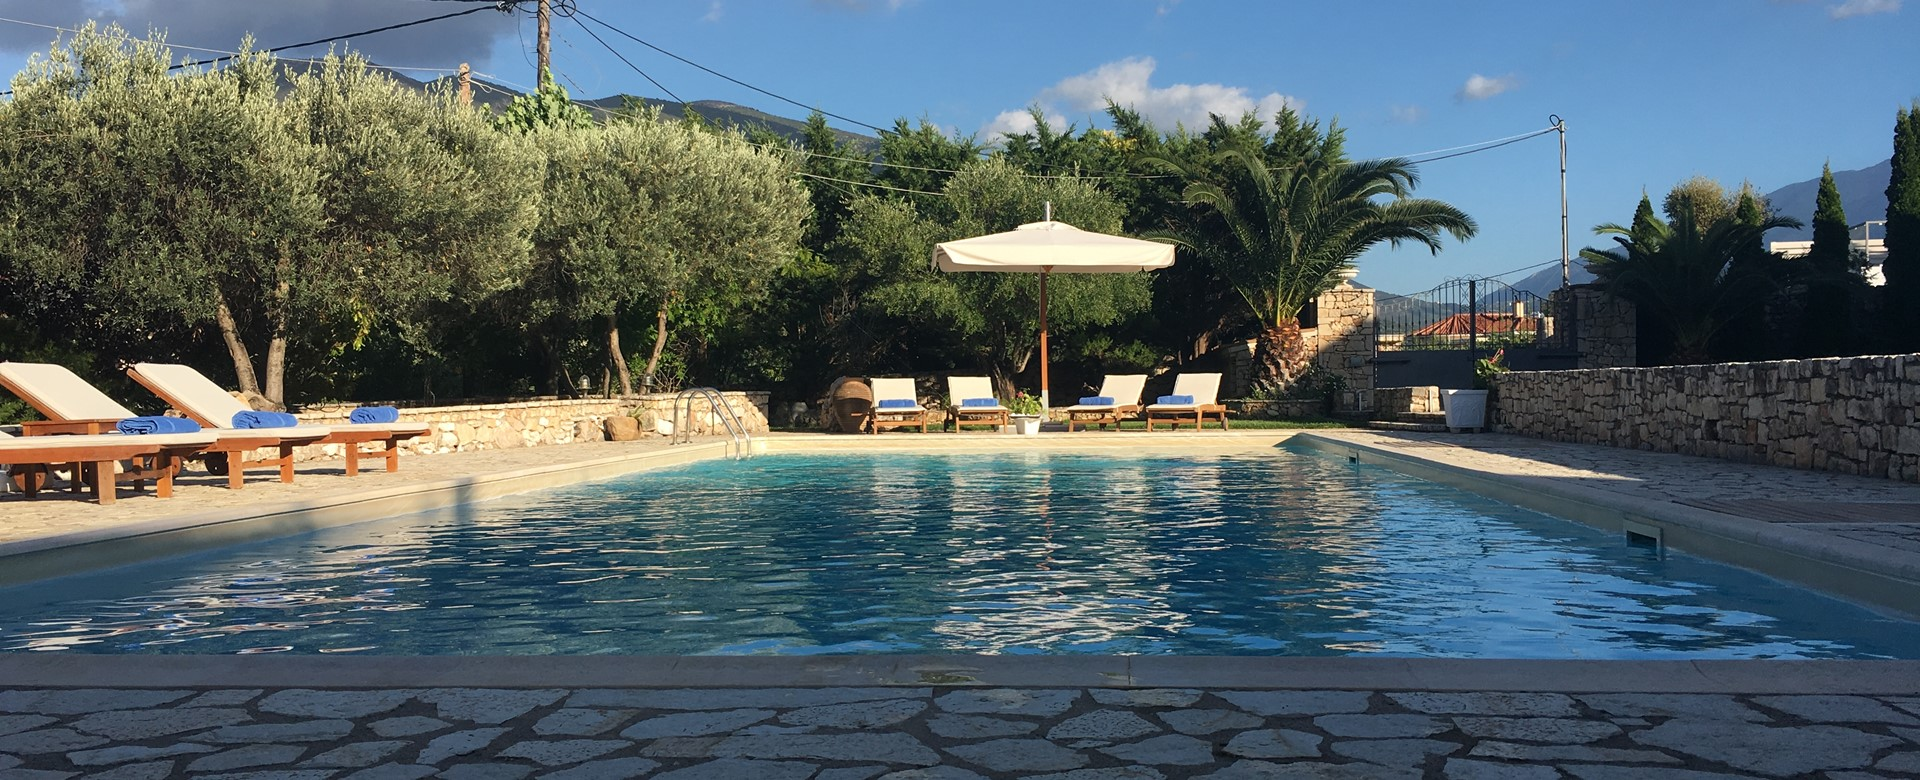 Evening sun around the pool at Casa Angela, Melissani Apartments, Karavomilos, Kefalonia, Greek Islands